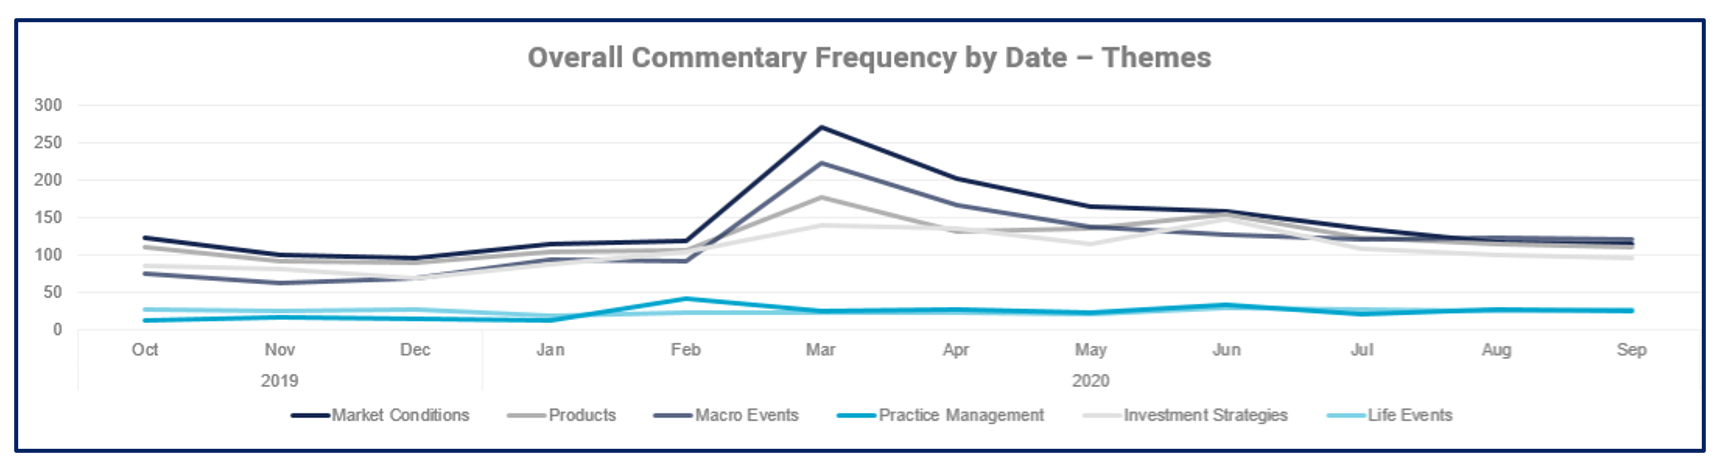 Thought Leadership Analysis Commentary Frequency by Themes